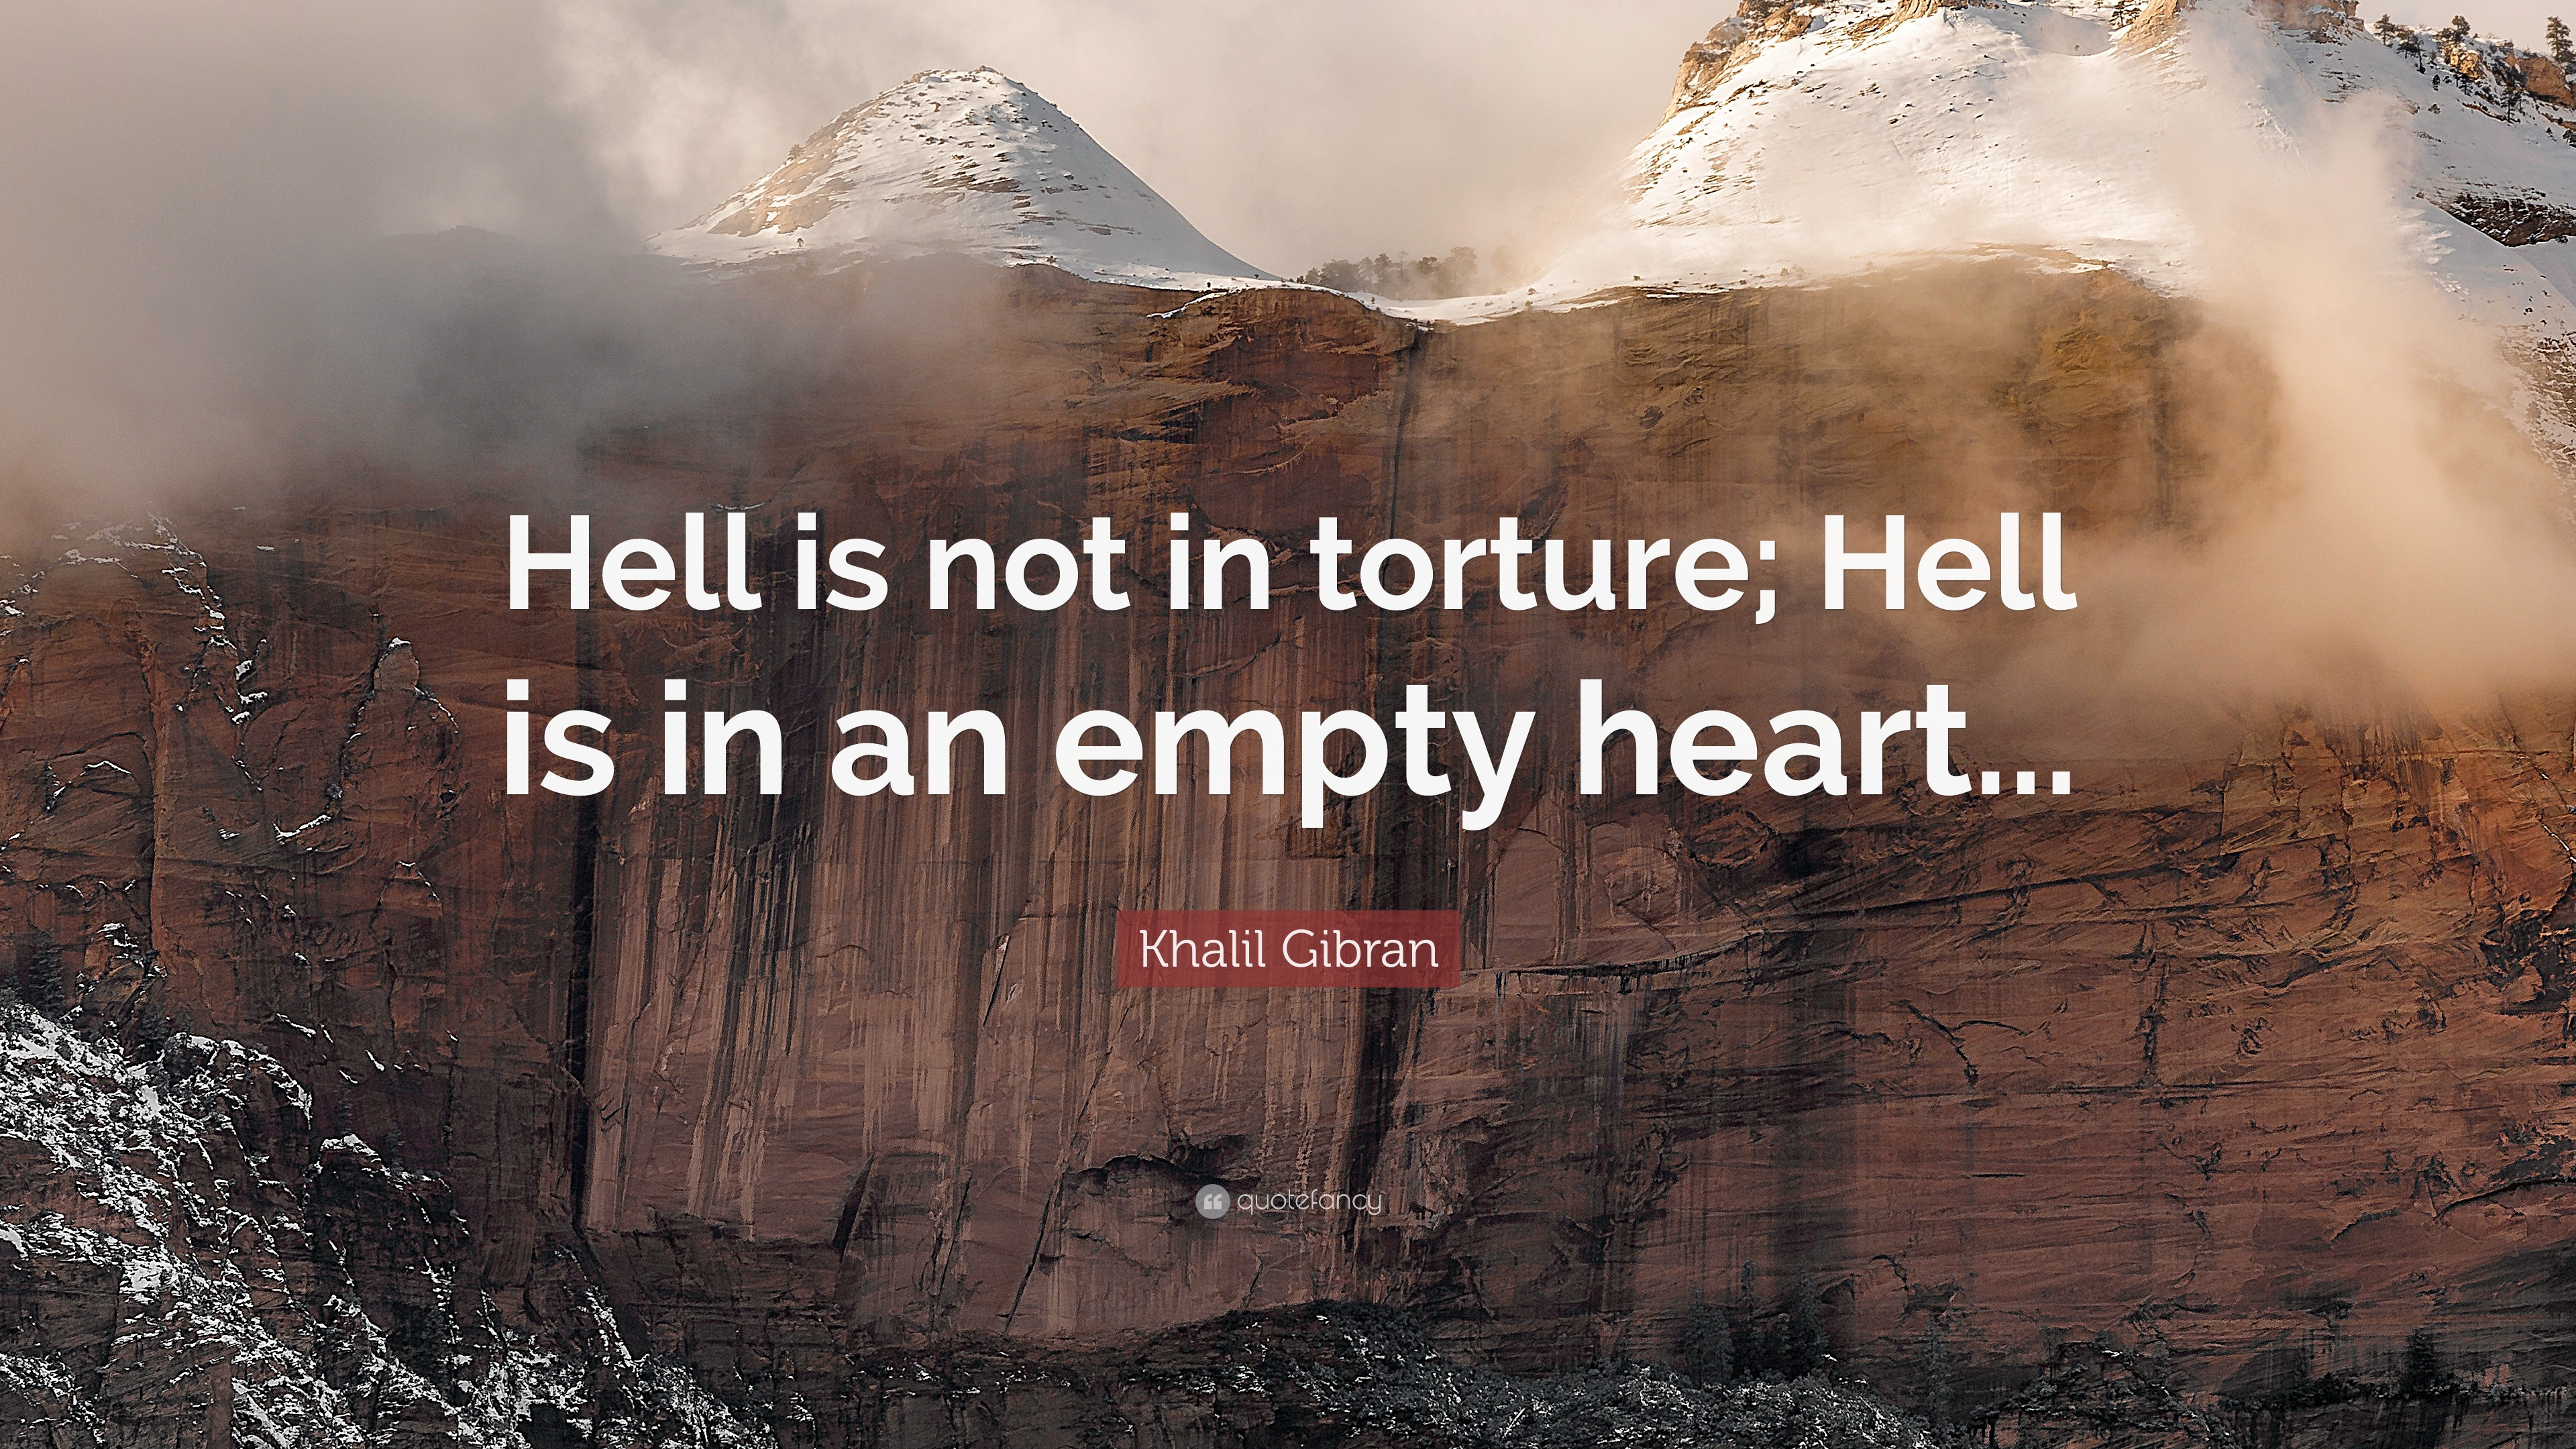 Khalil Gibran Quote Hell Is Not In Torture Hell Is In An Empty